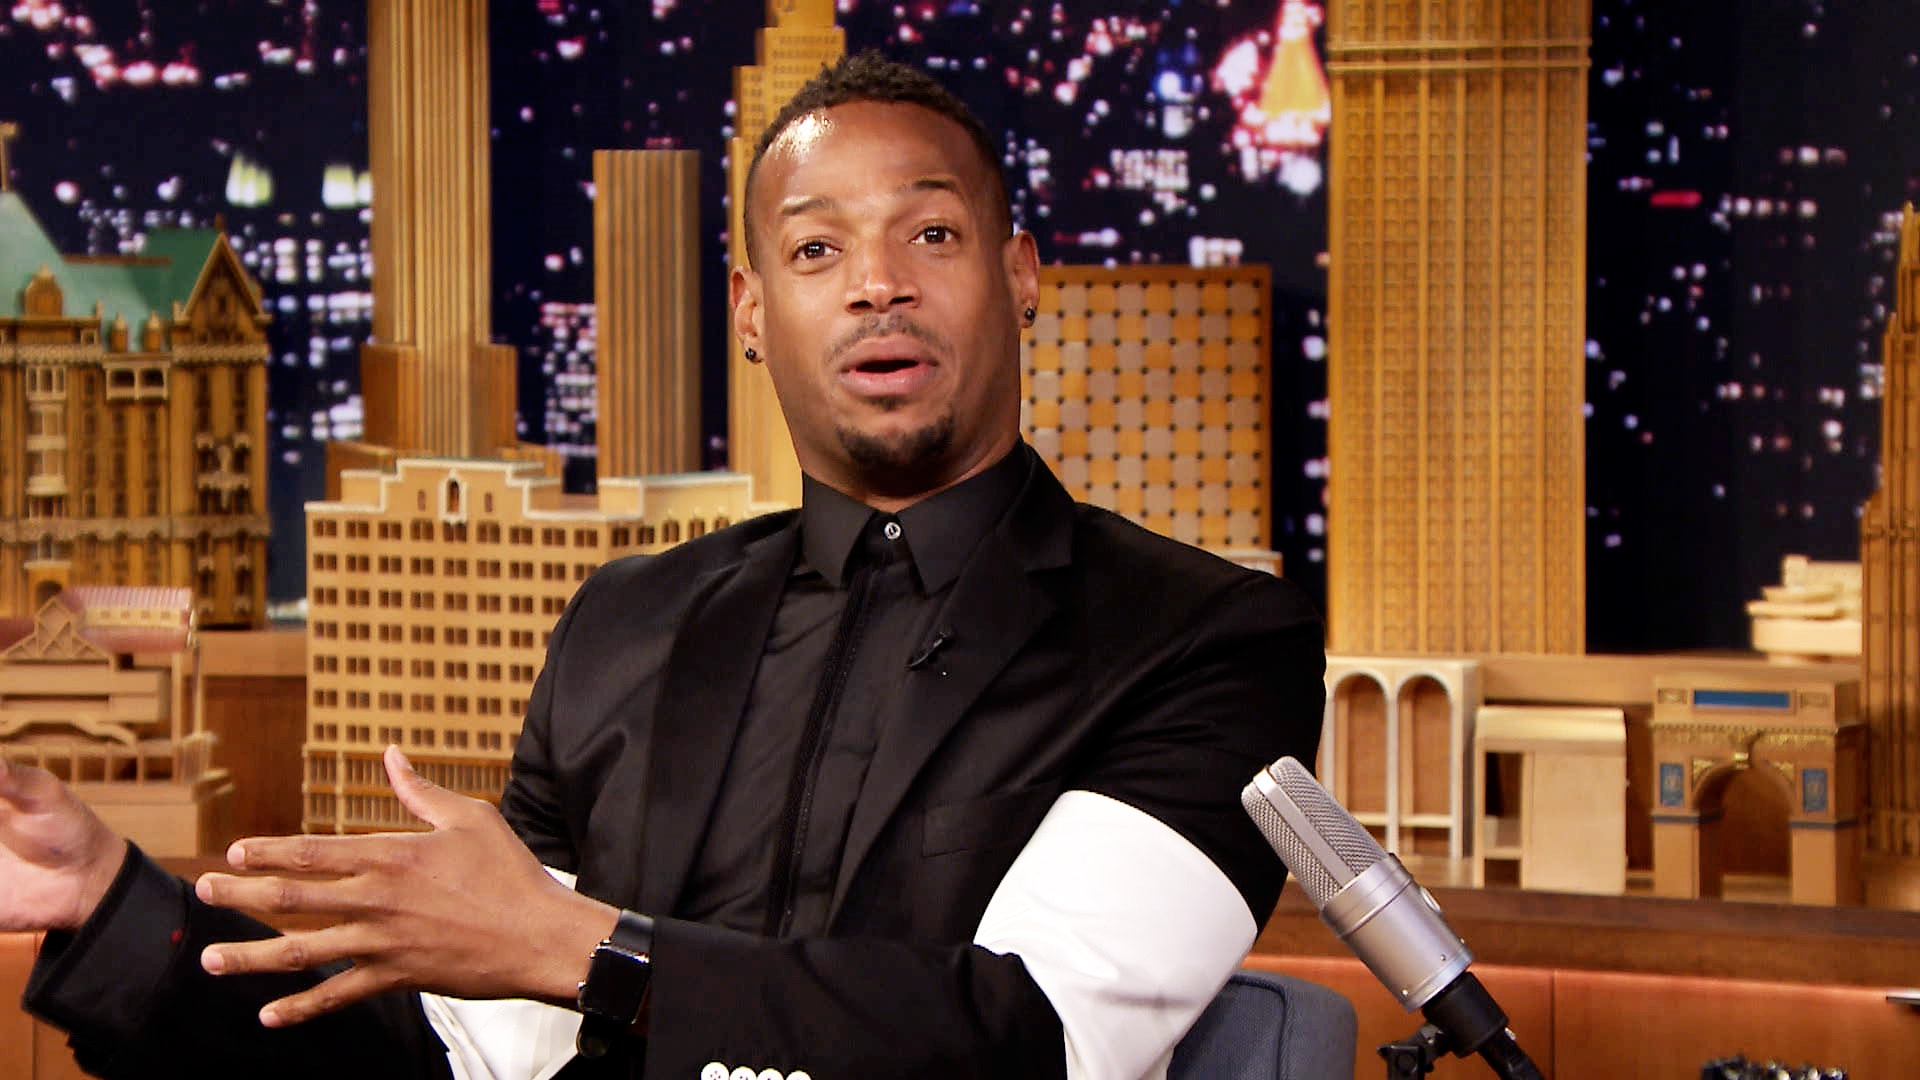 Marlon Wayans Wallpaper